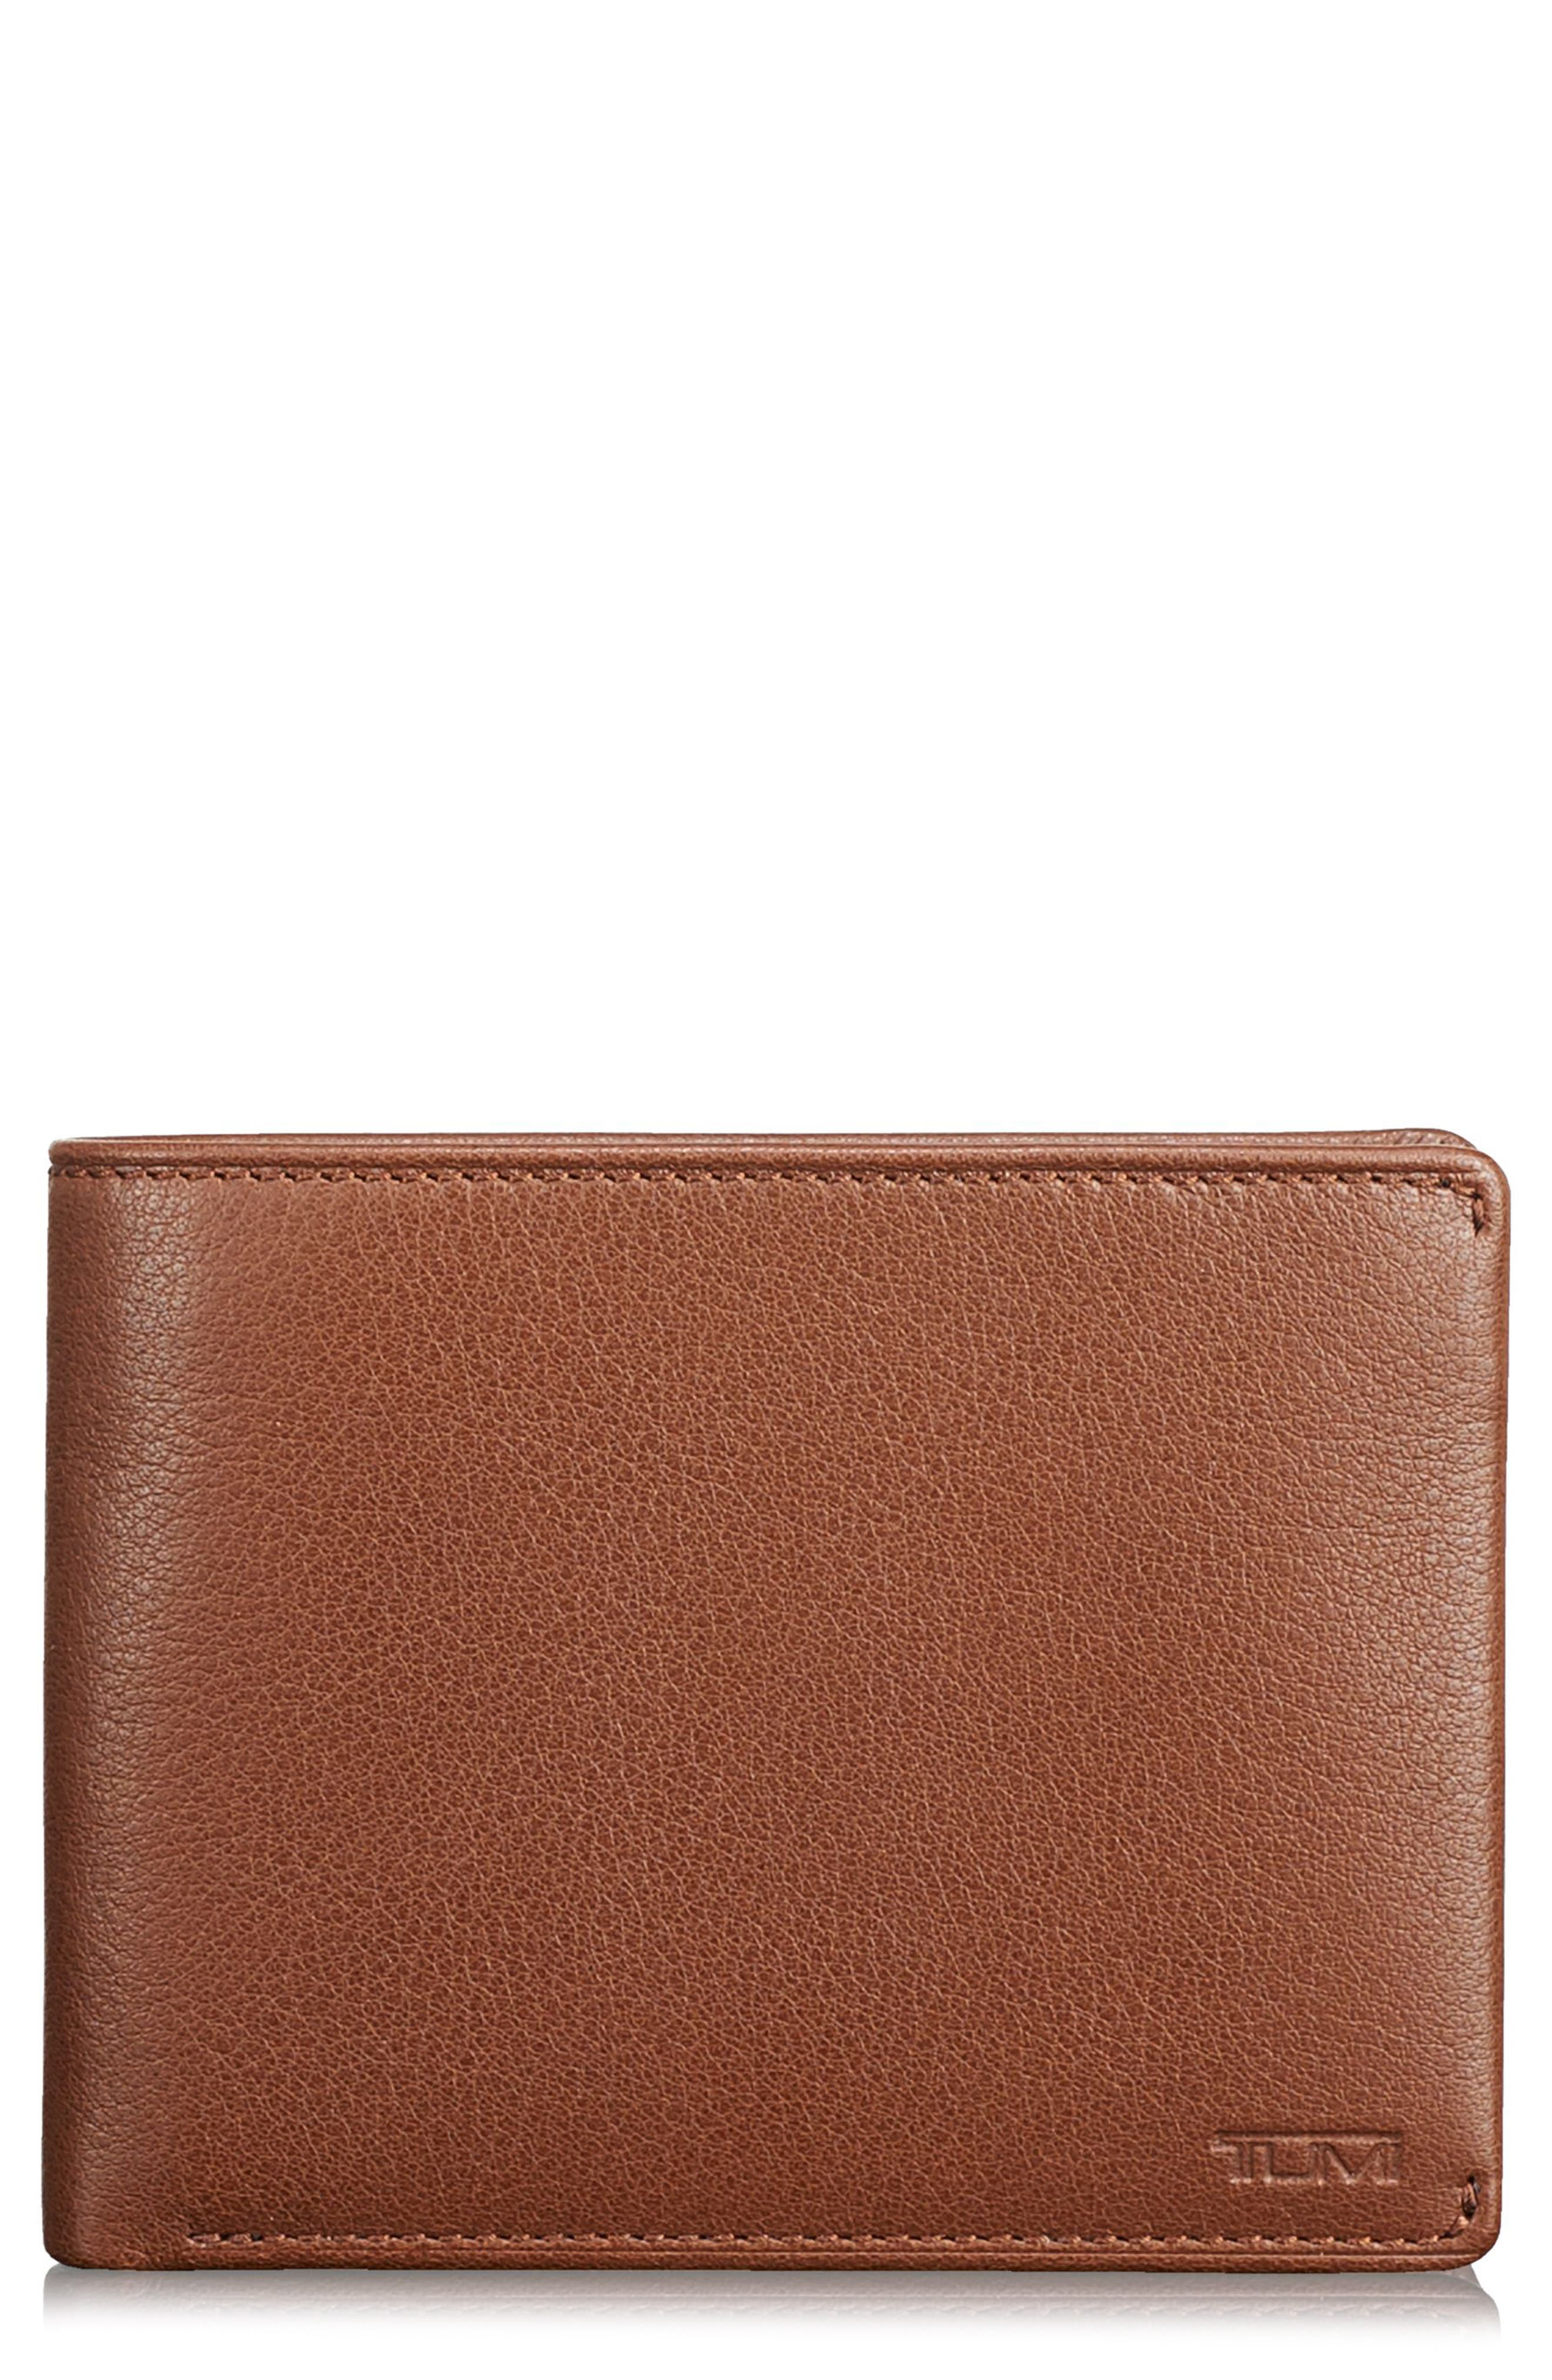 Main Image - Tumi Global Leather RFID Wallet